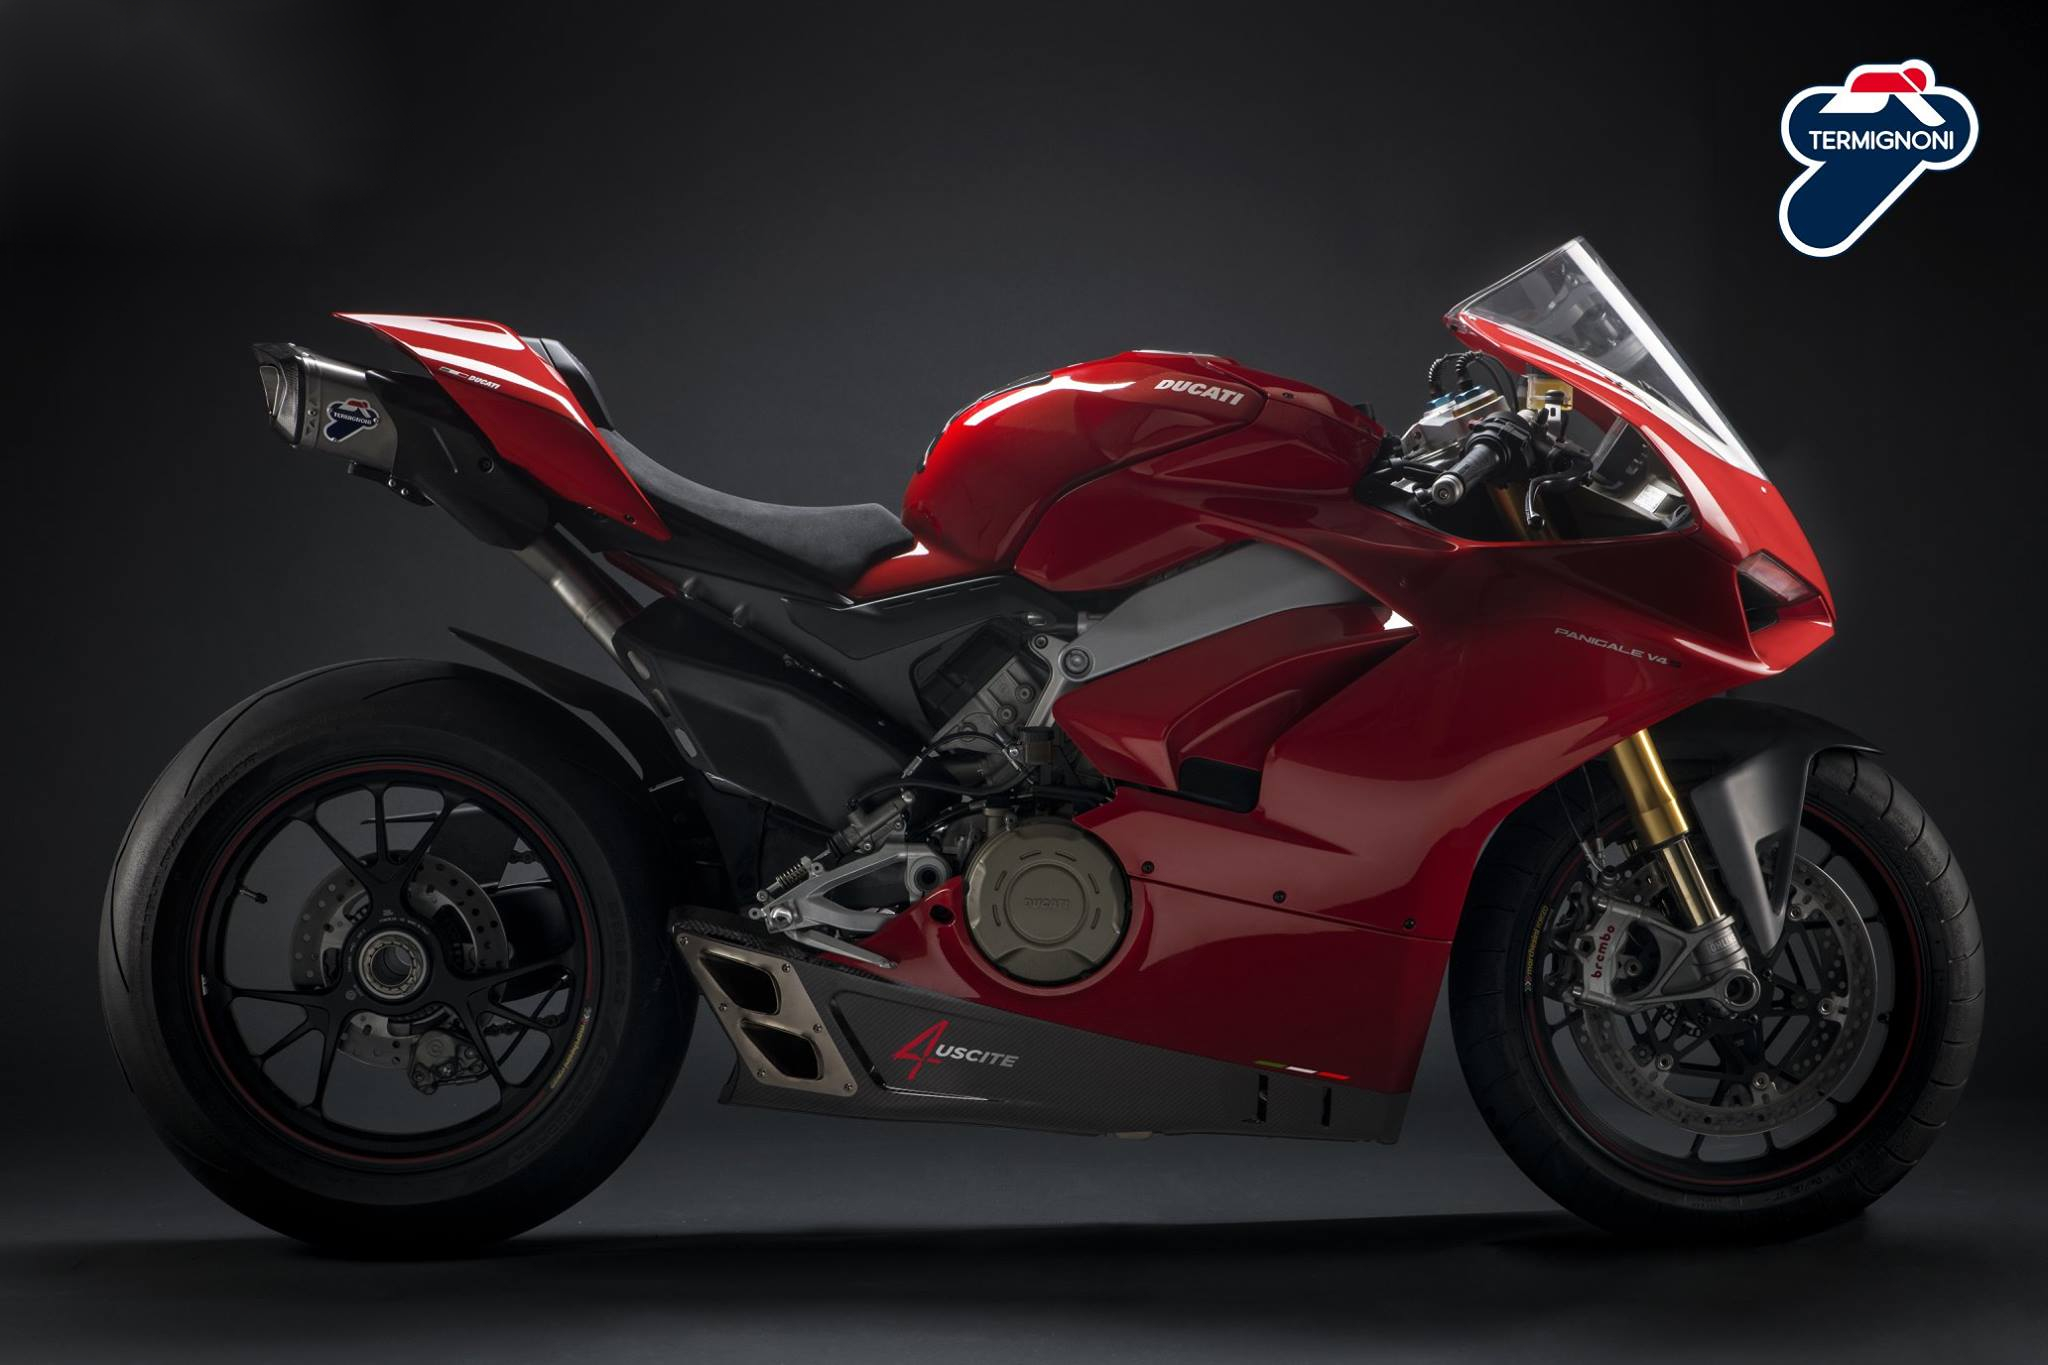 Termignoni reveals the exotic 4Uscite exhaust for the Ducati Panigale V4